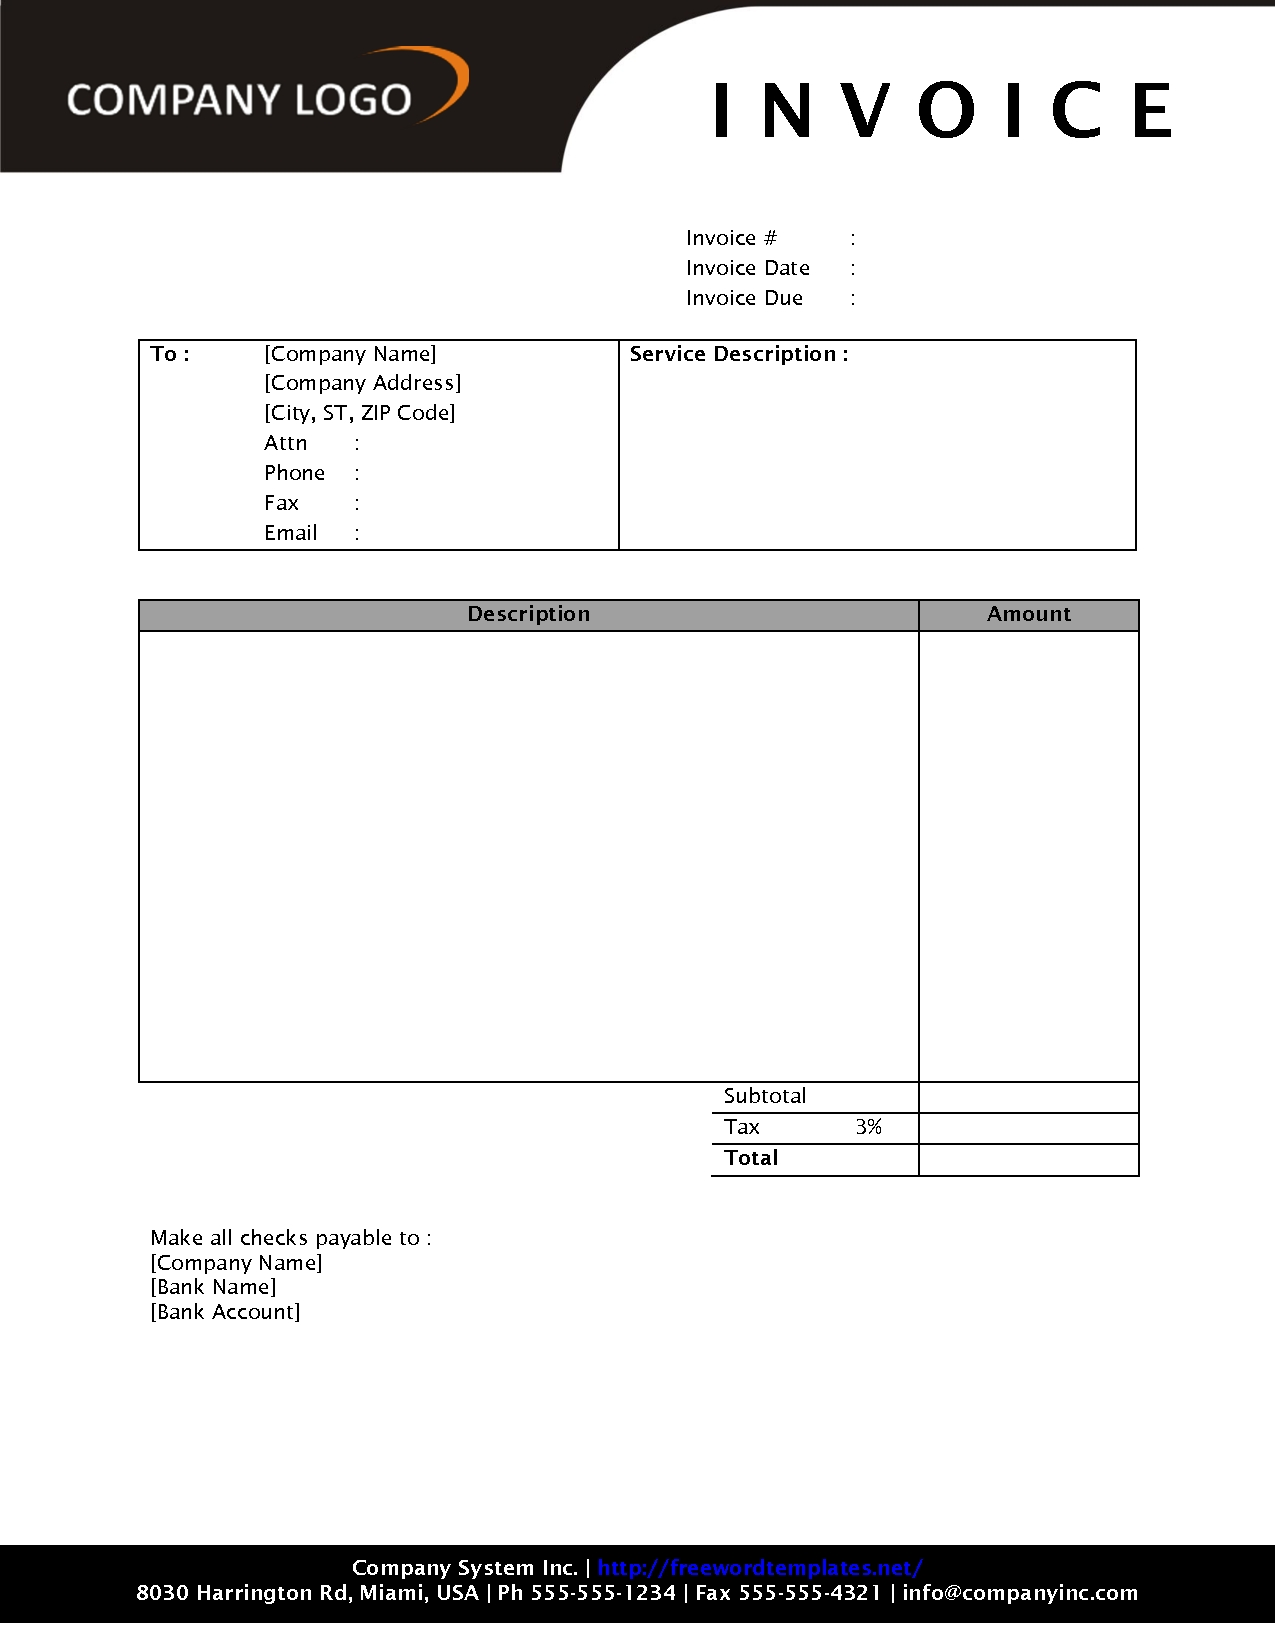 free download invoice template free invoice software free invoice free download